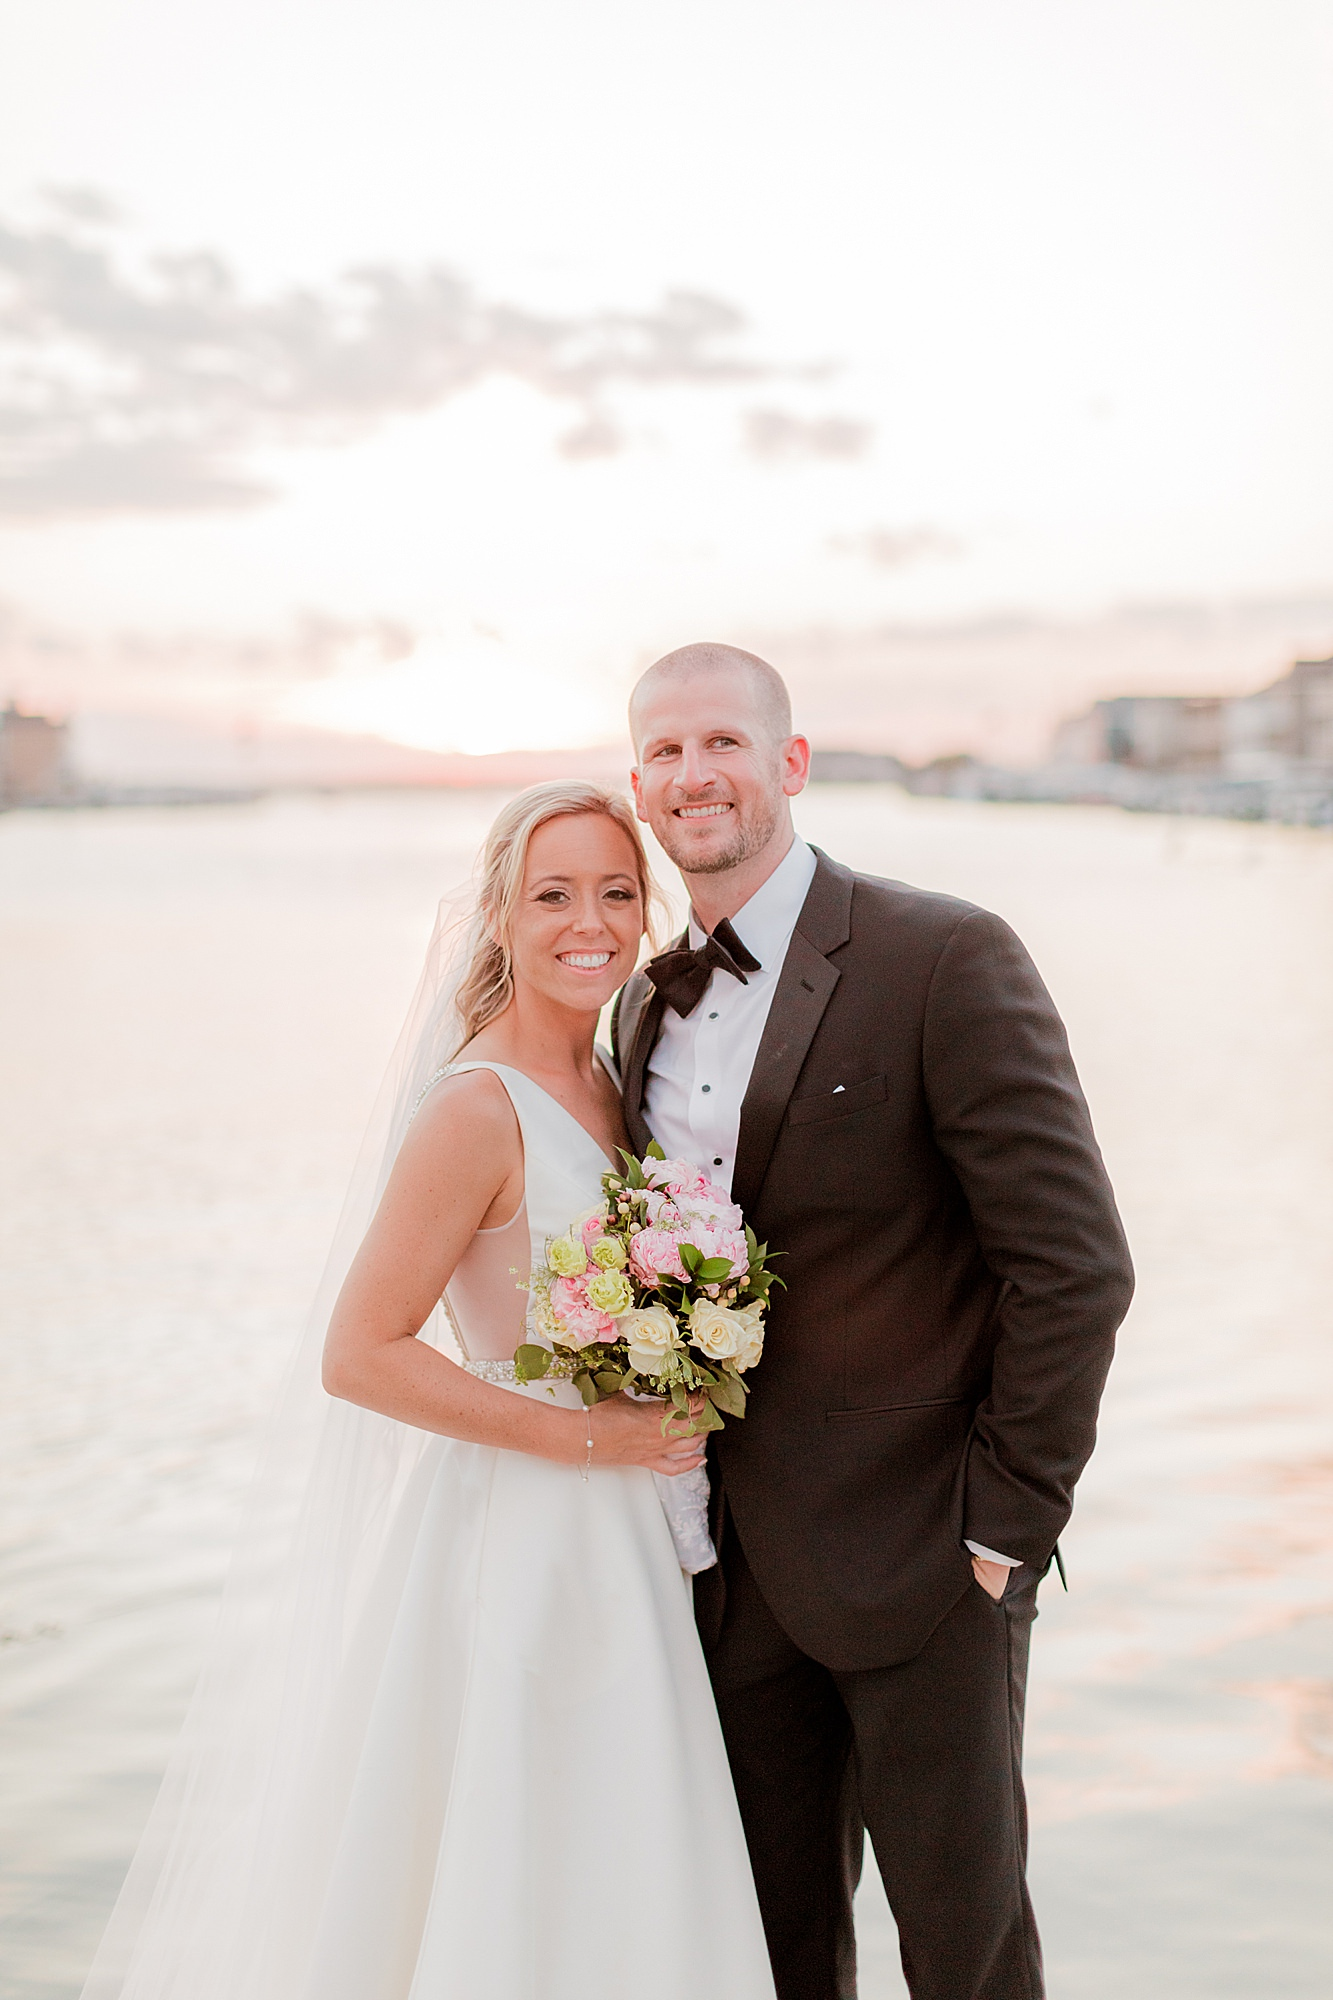 Natural and Vibrant Wedding Photography at the Reeds in Stone Harbor NJ by Magdalena Studios 0059